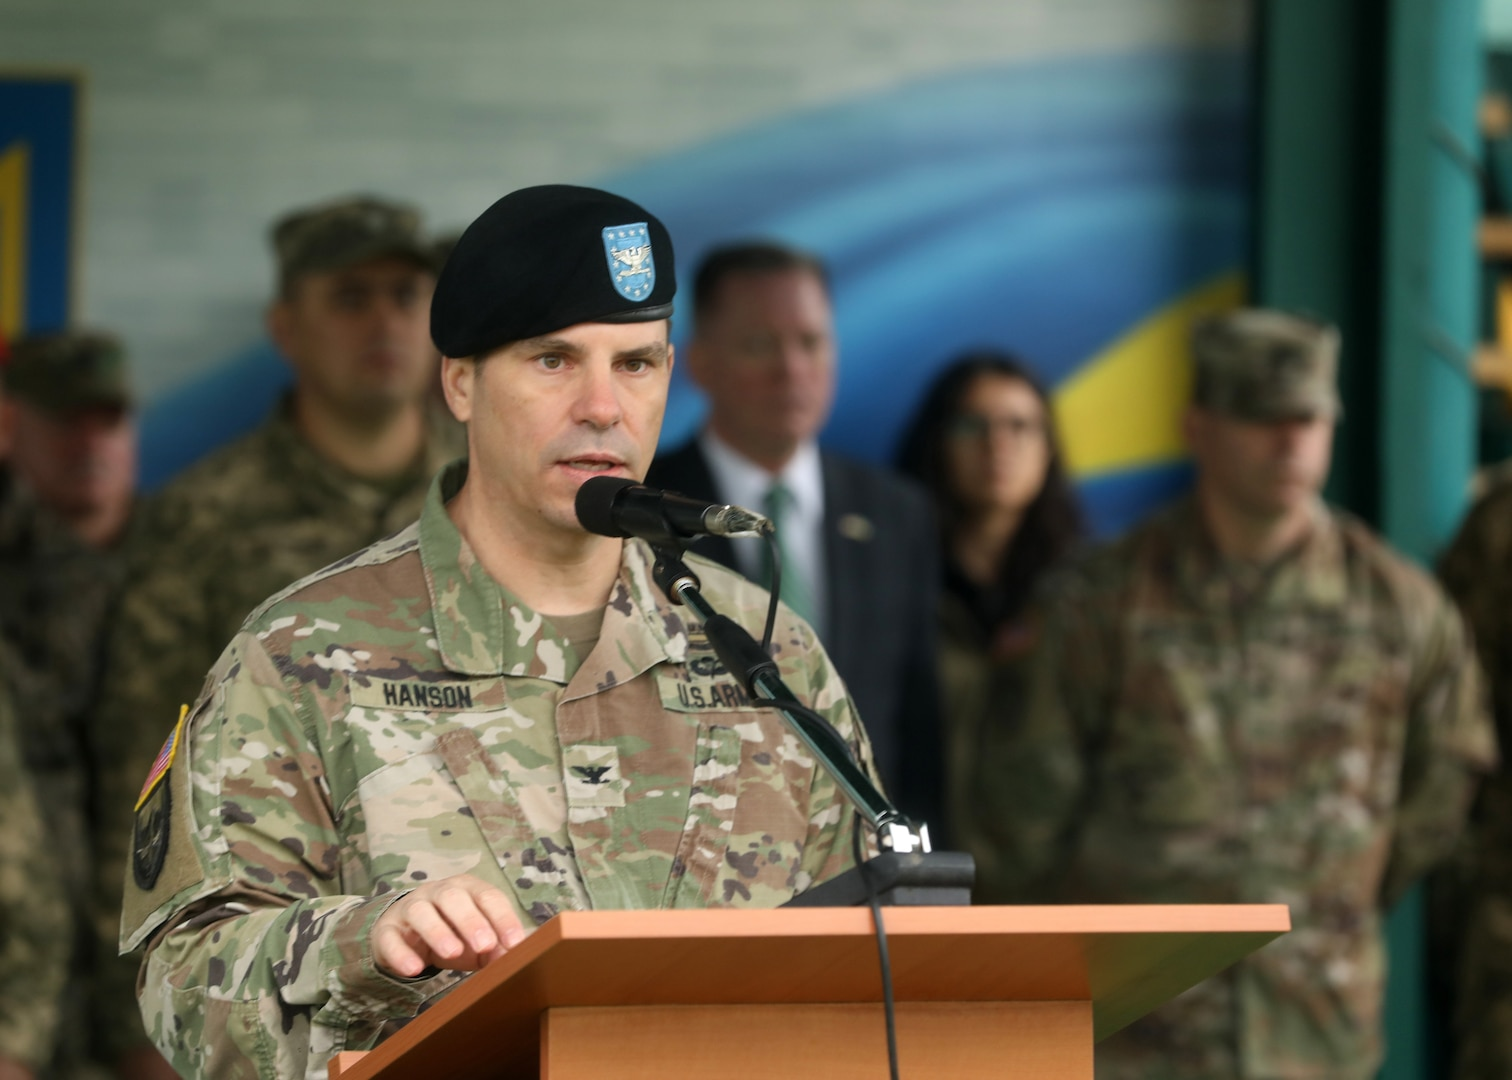 U.S. Army Col. Michael Hanson, co-director of Rapid Trident 21 from the U.S. Army, speaks to a multinational force during the opening ceremony for Rapid Trident 21, an annual Ukrainian-American training exercise, Sept. 20, at Central City Stadium.